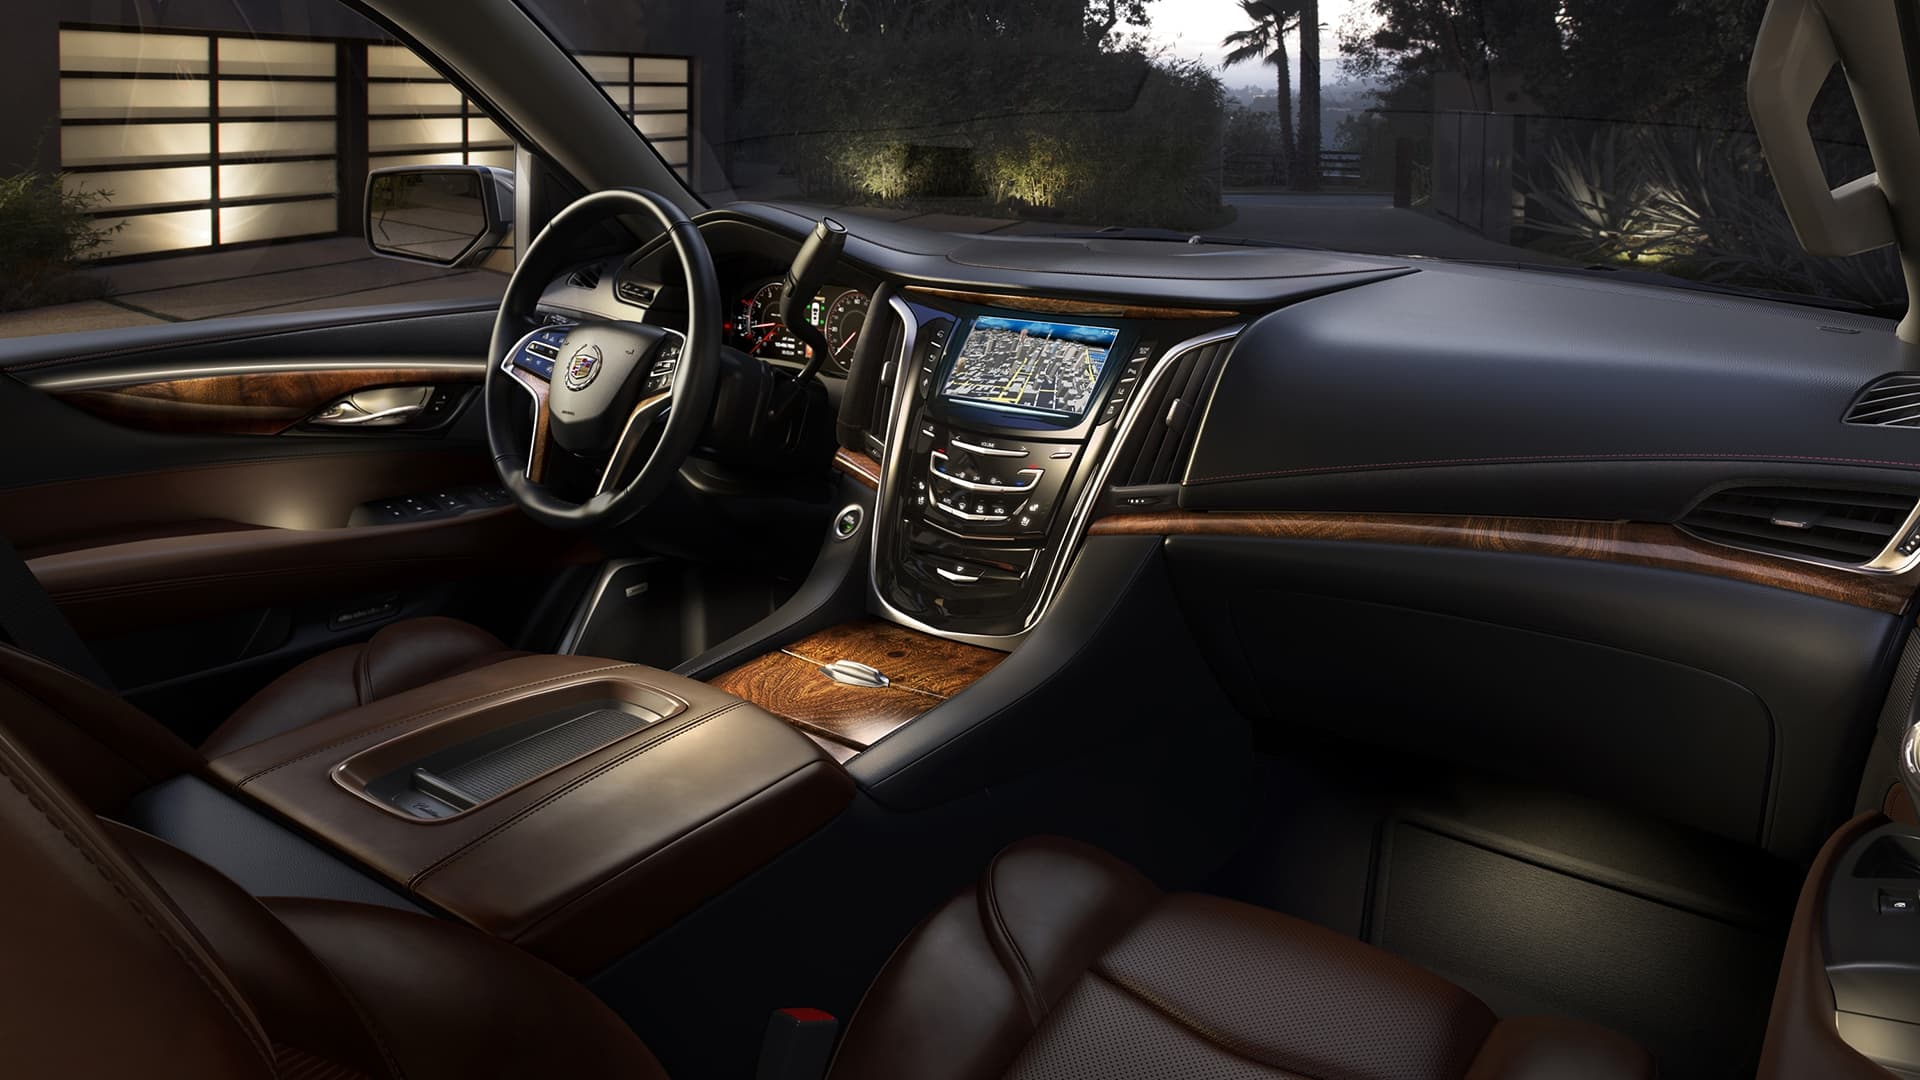 2016 cadillac escalade interior hd wallpaper for pc 20 cadillac escalade wallpapers hd 2015 Escalade Interior at gsmx.co